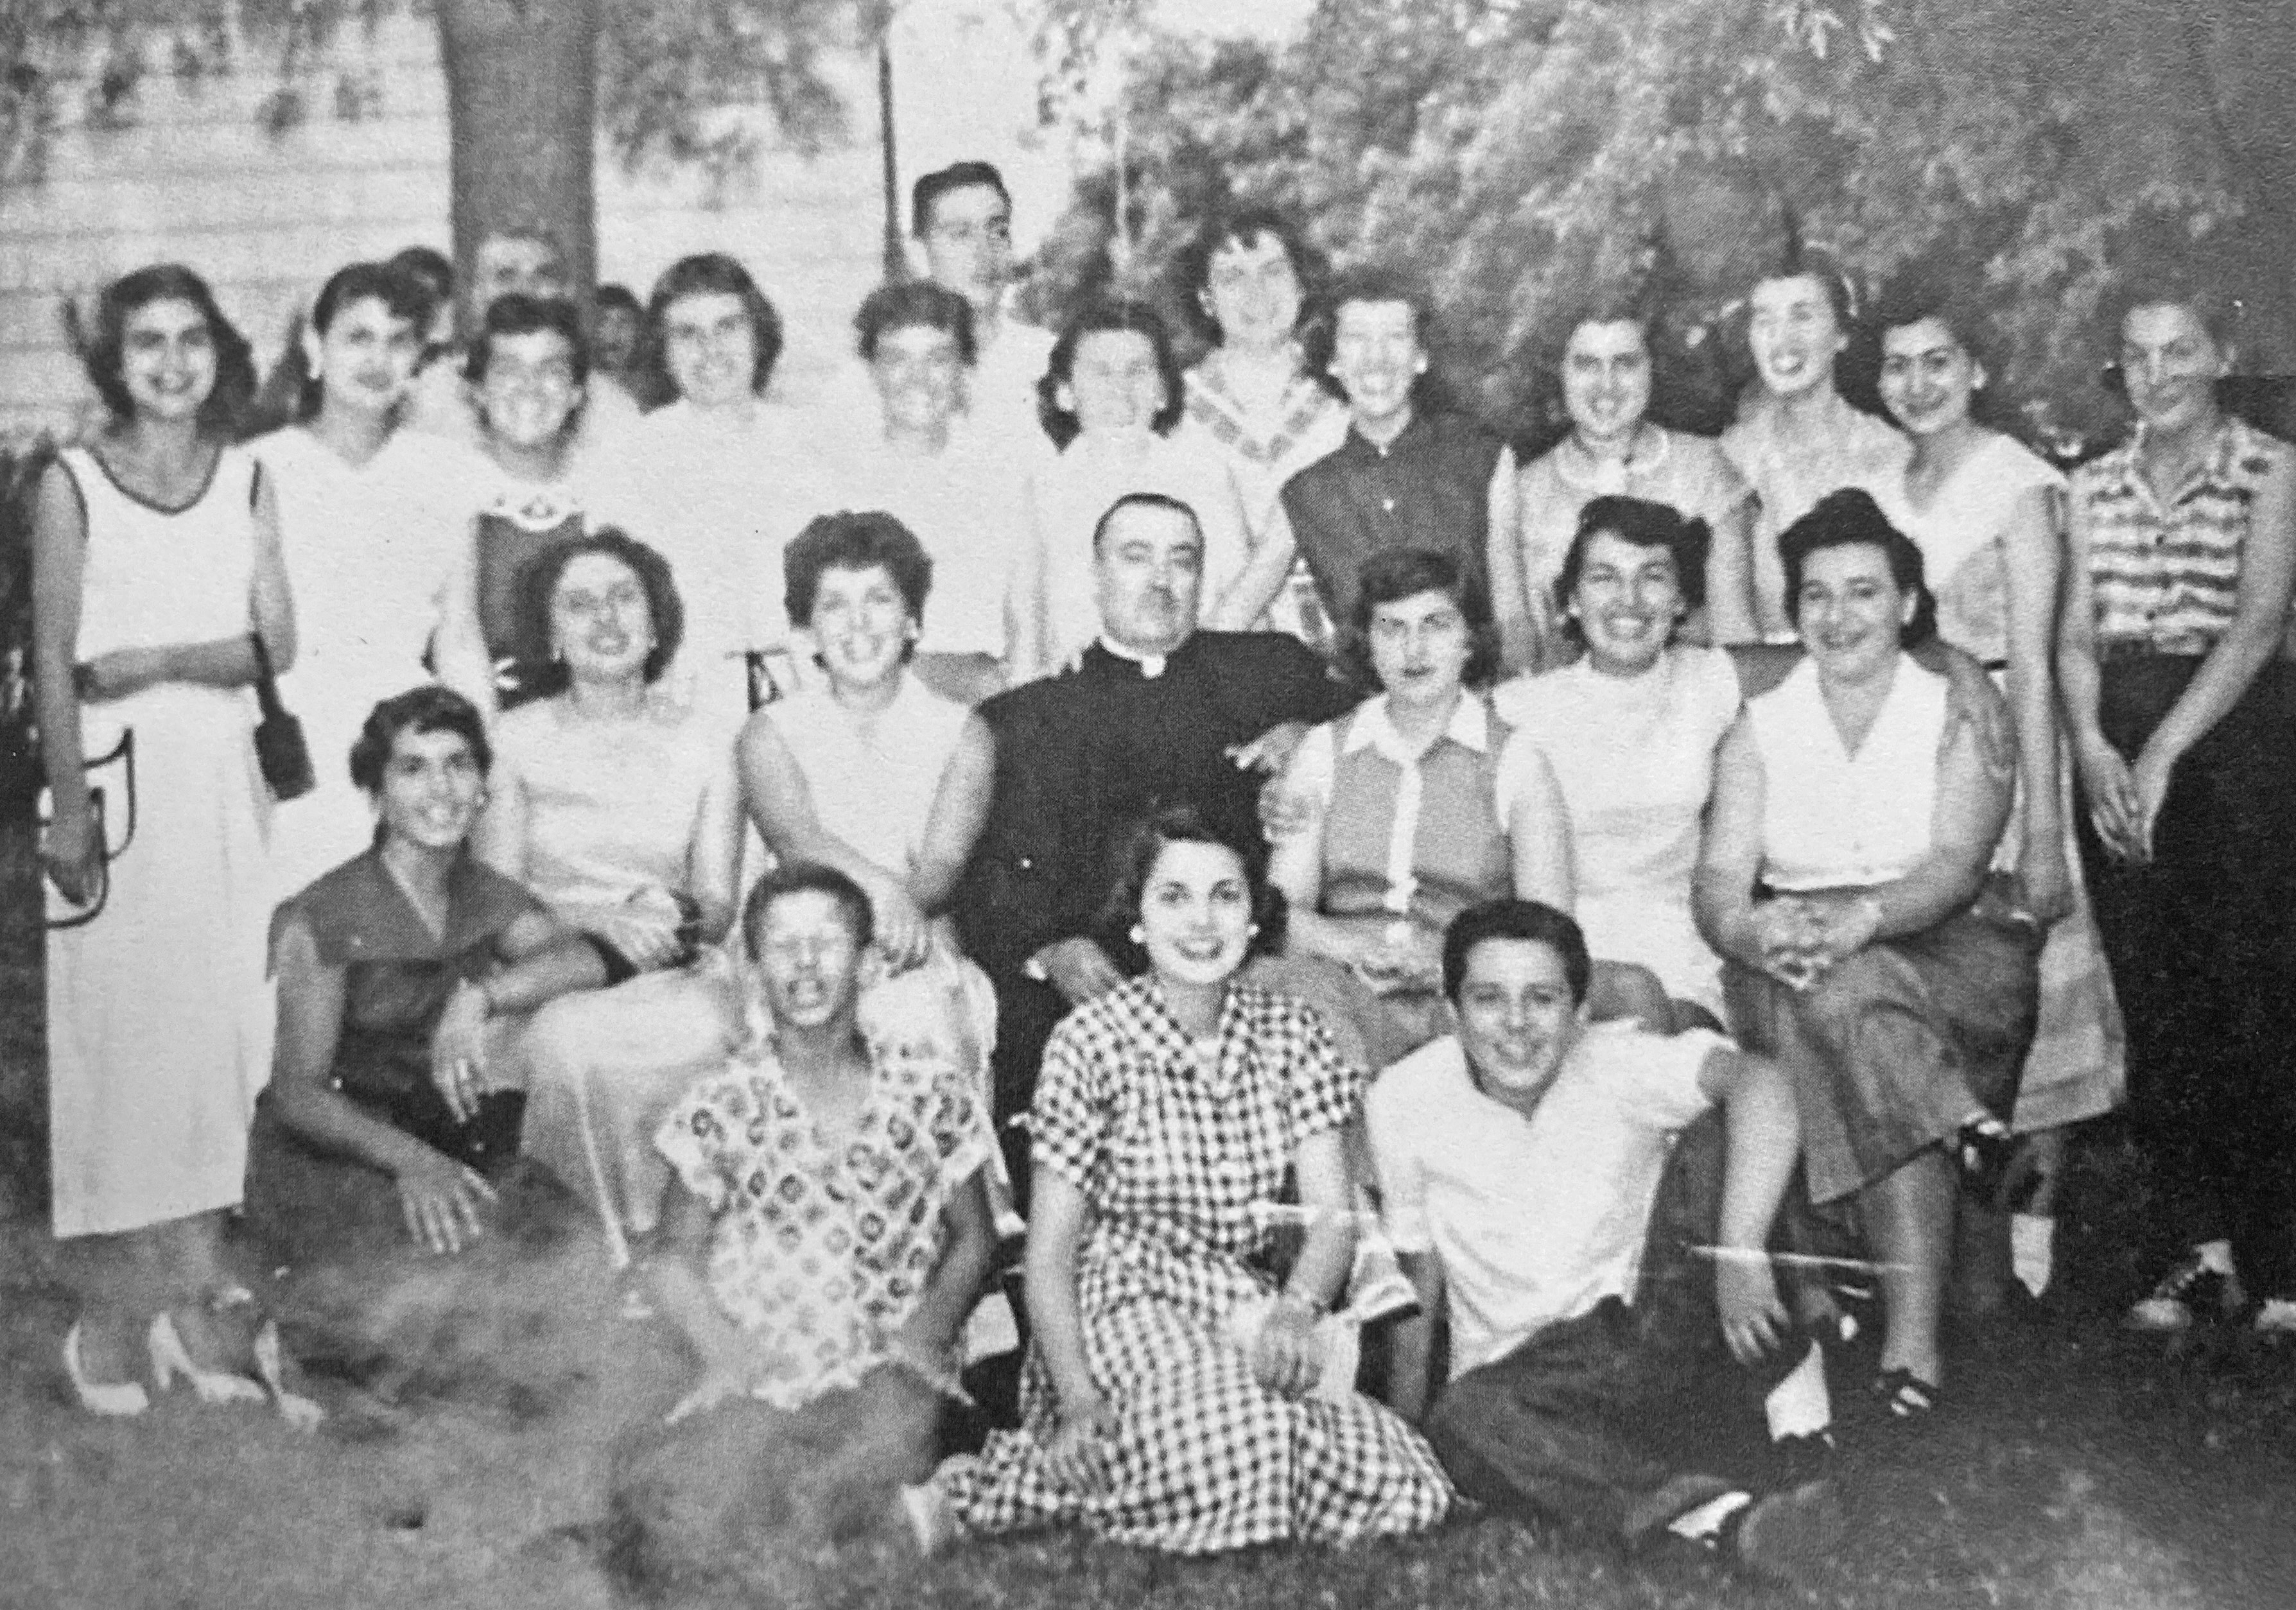 History at Home will recall the history of the Greek community in Fond du Lac